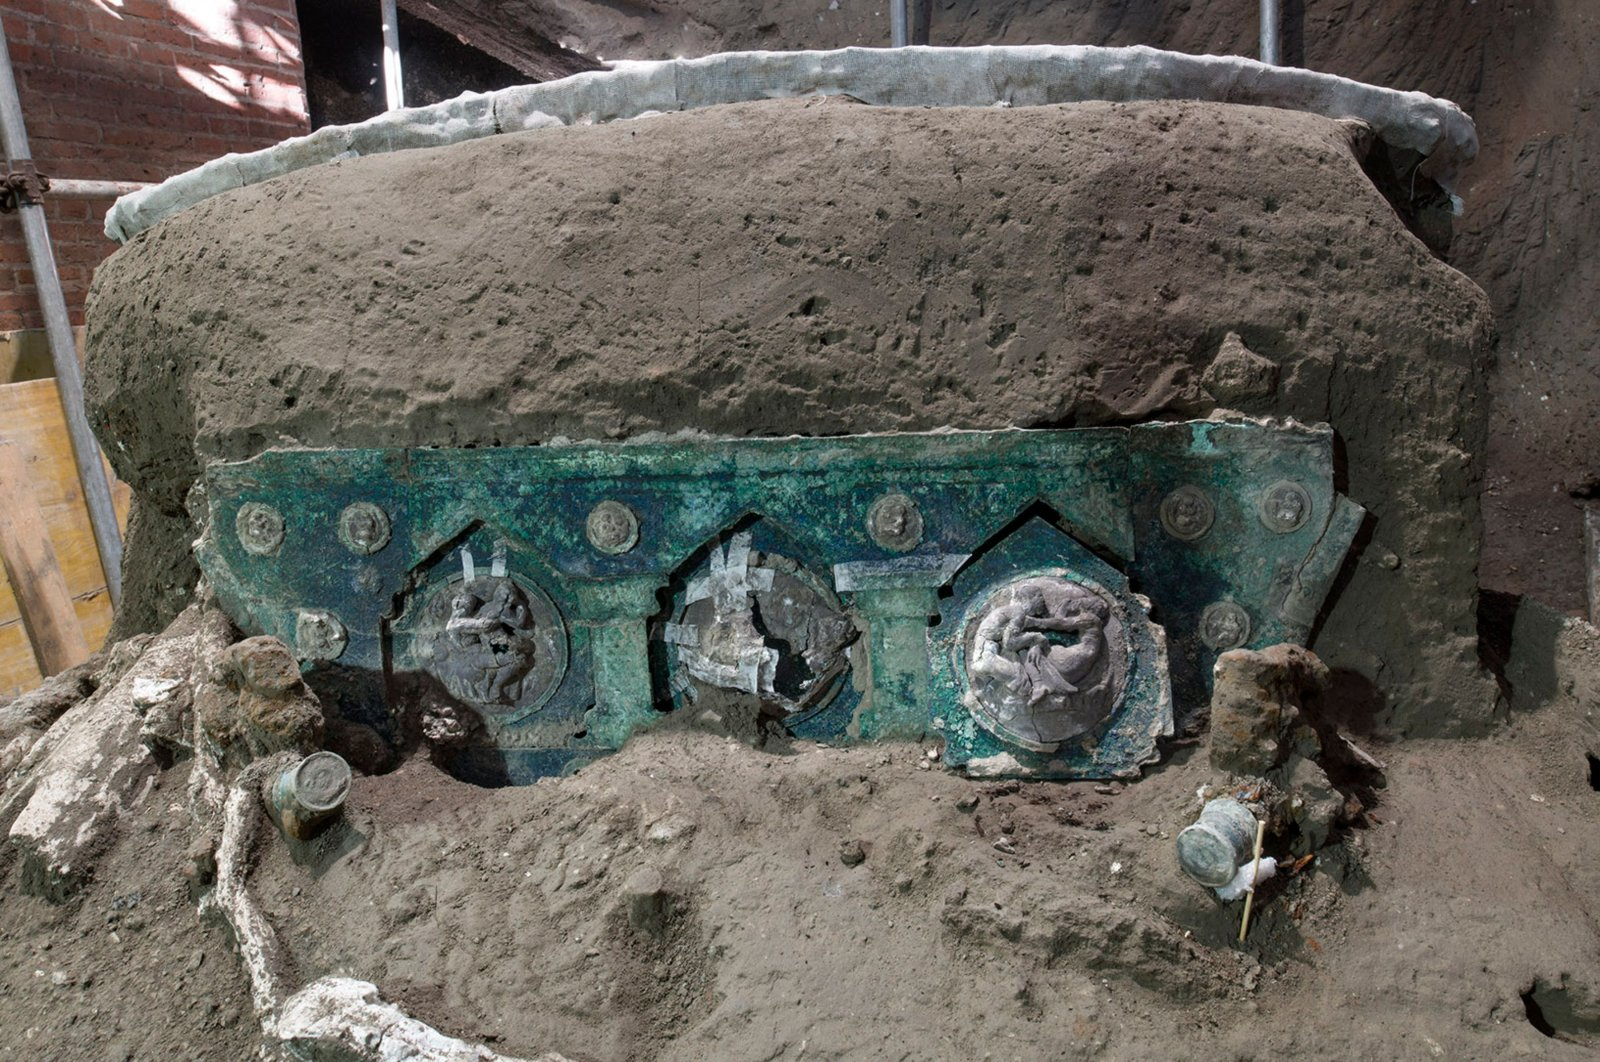 A photo handout on Feb. 27, 2021 by the archaeological park of Pompeii shows a detail of a large Roman four-wheeled ceremonial chariot after it was discovered near the archaeological park of Pompeii. (AFP Photo)